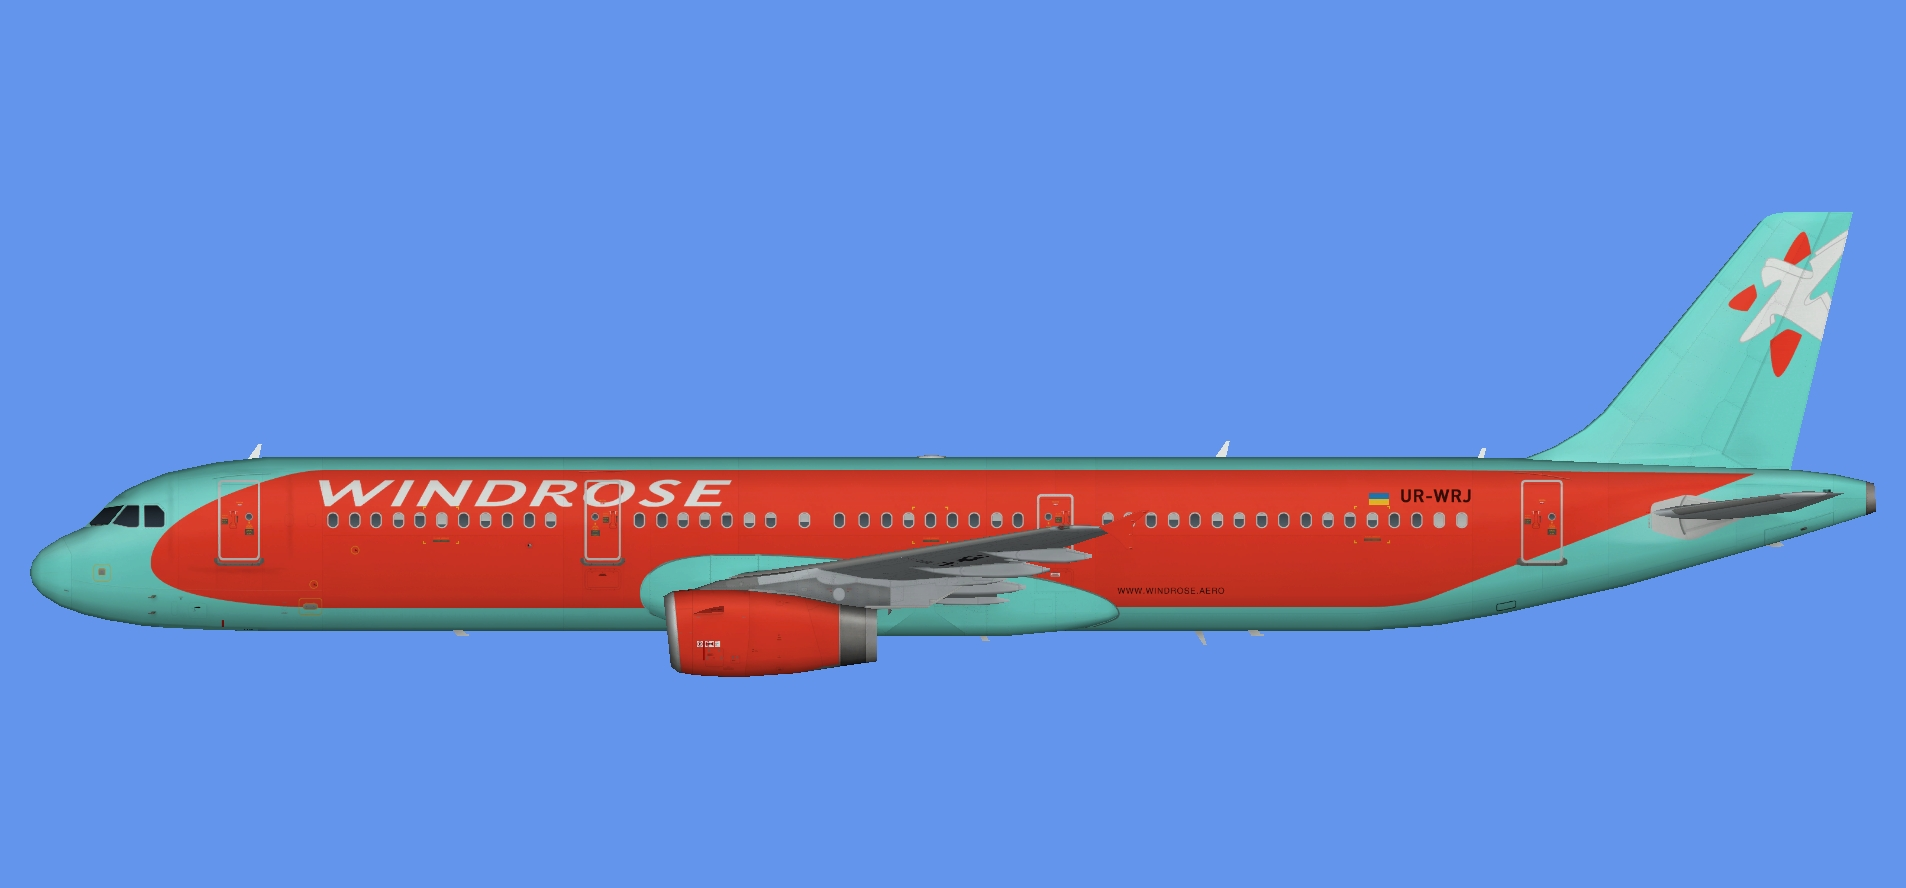 Wind Rose Airbus A321 Update